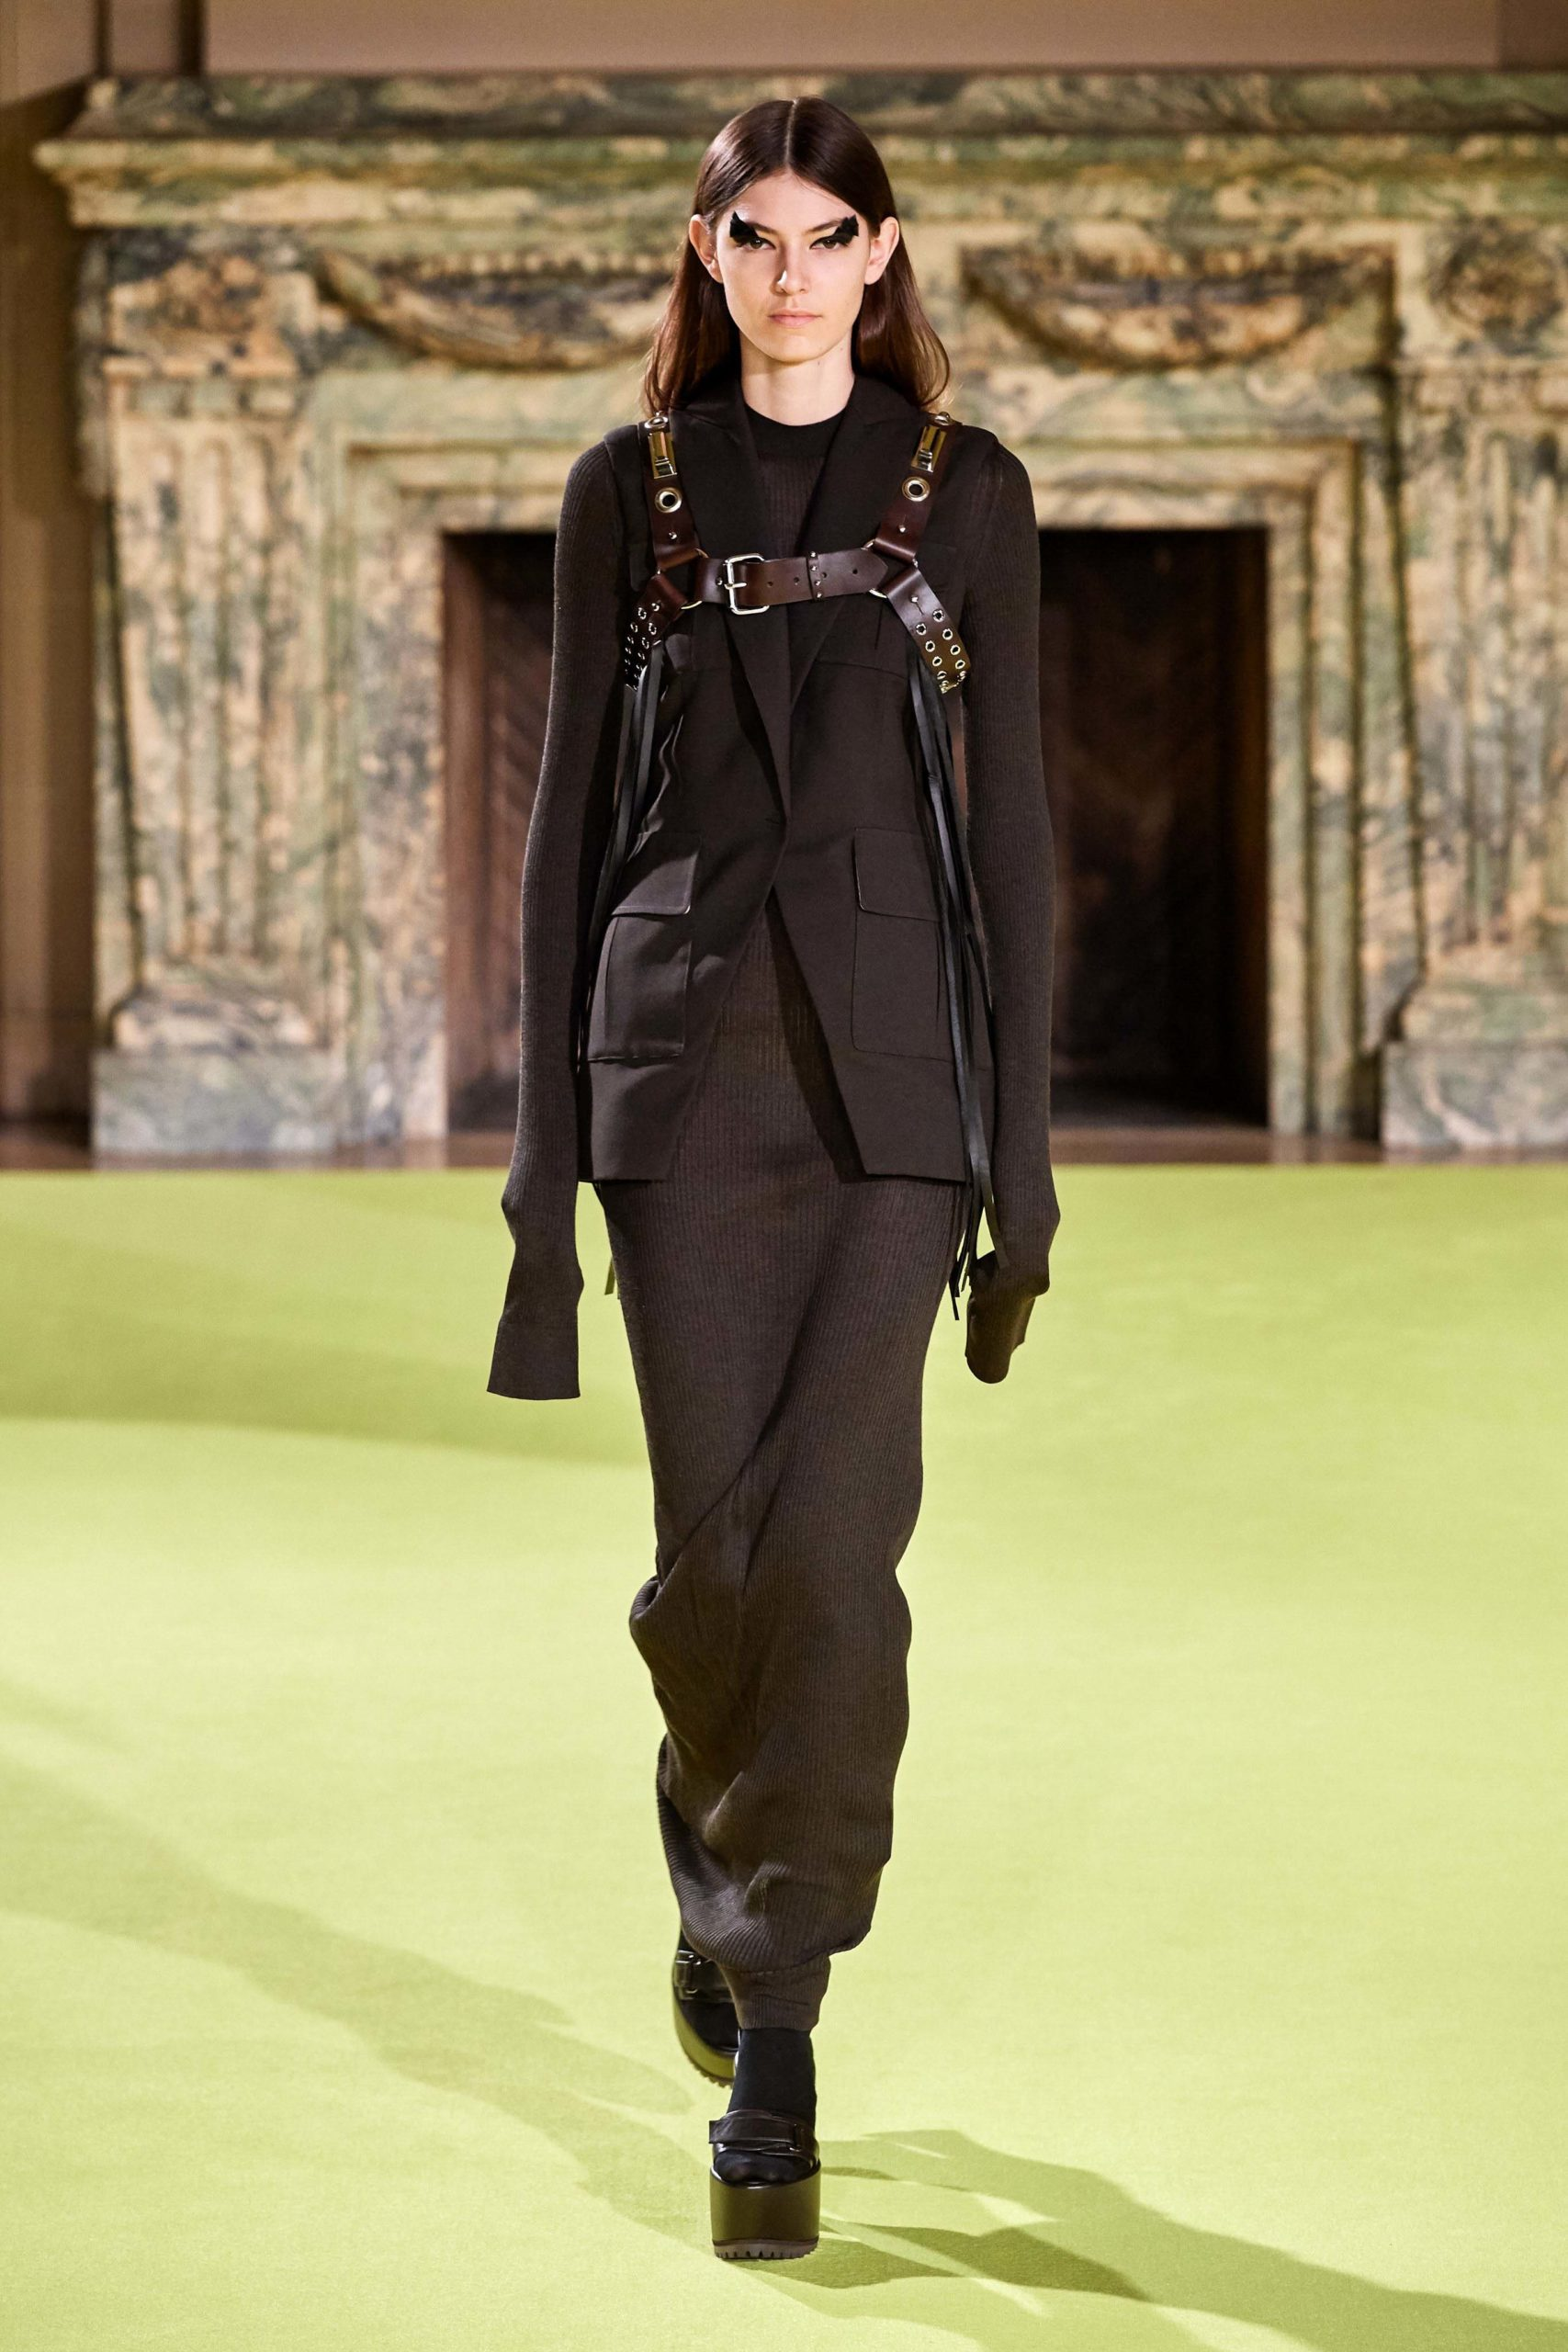 Vera Wang Fall 2020 trends runway coverage Ready To Wear Vogue Harness